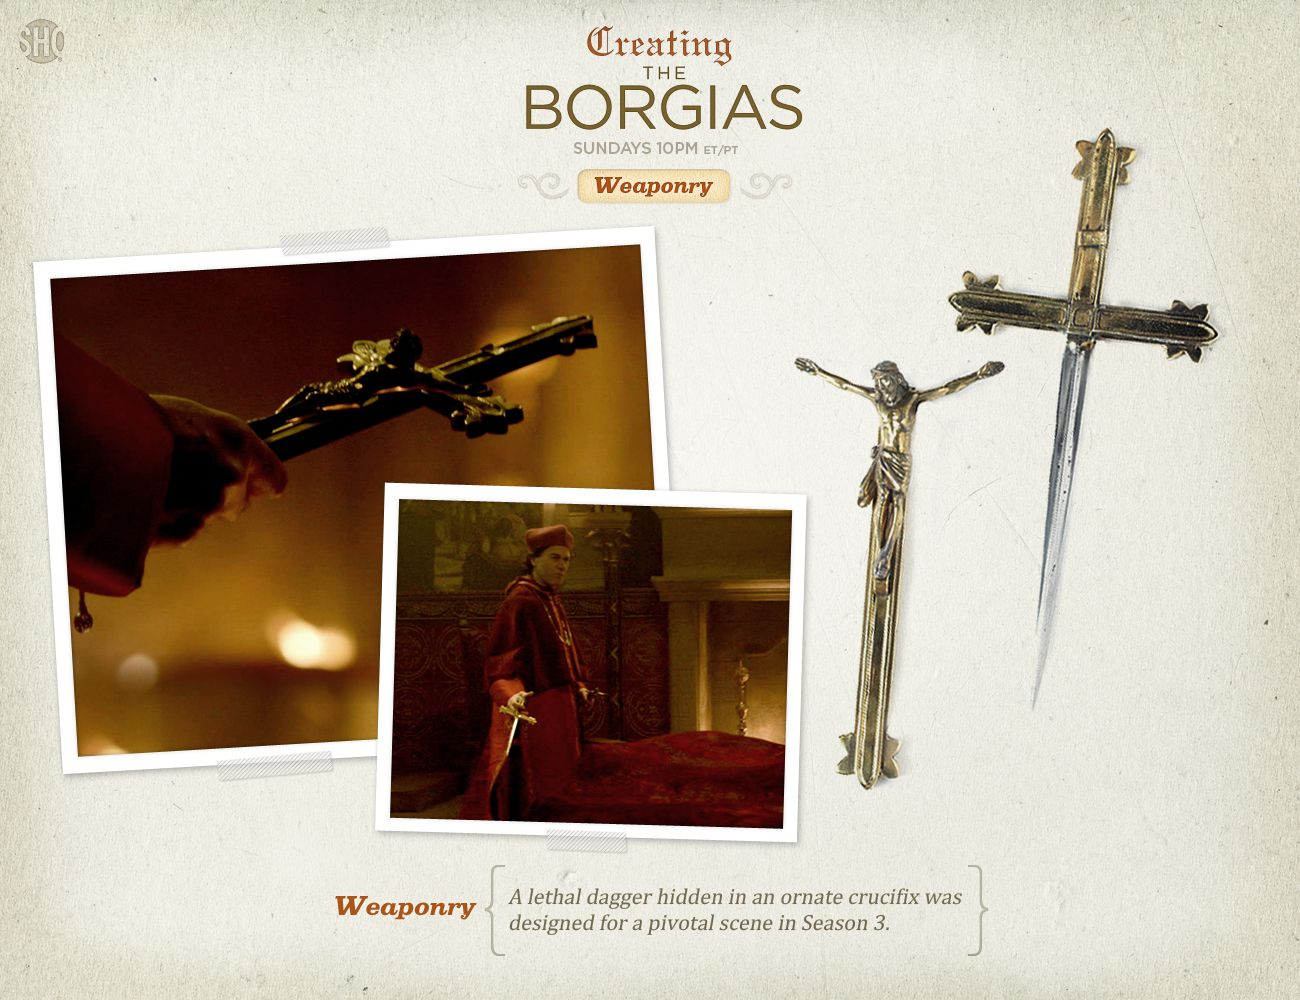 A Lethal Dagger Hidden In An Ornate Crucifix Was Designed For A Pivotal Scene In Season 3 The Borgias The Borgia Crying Angel